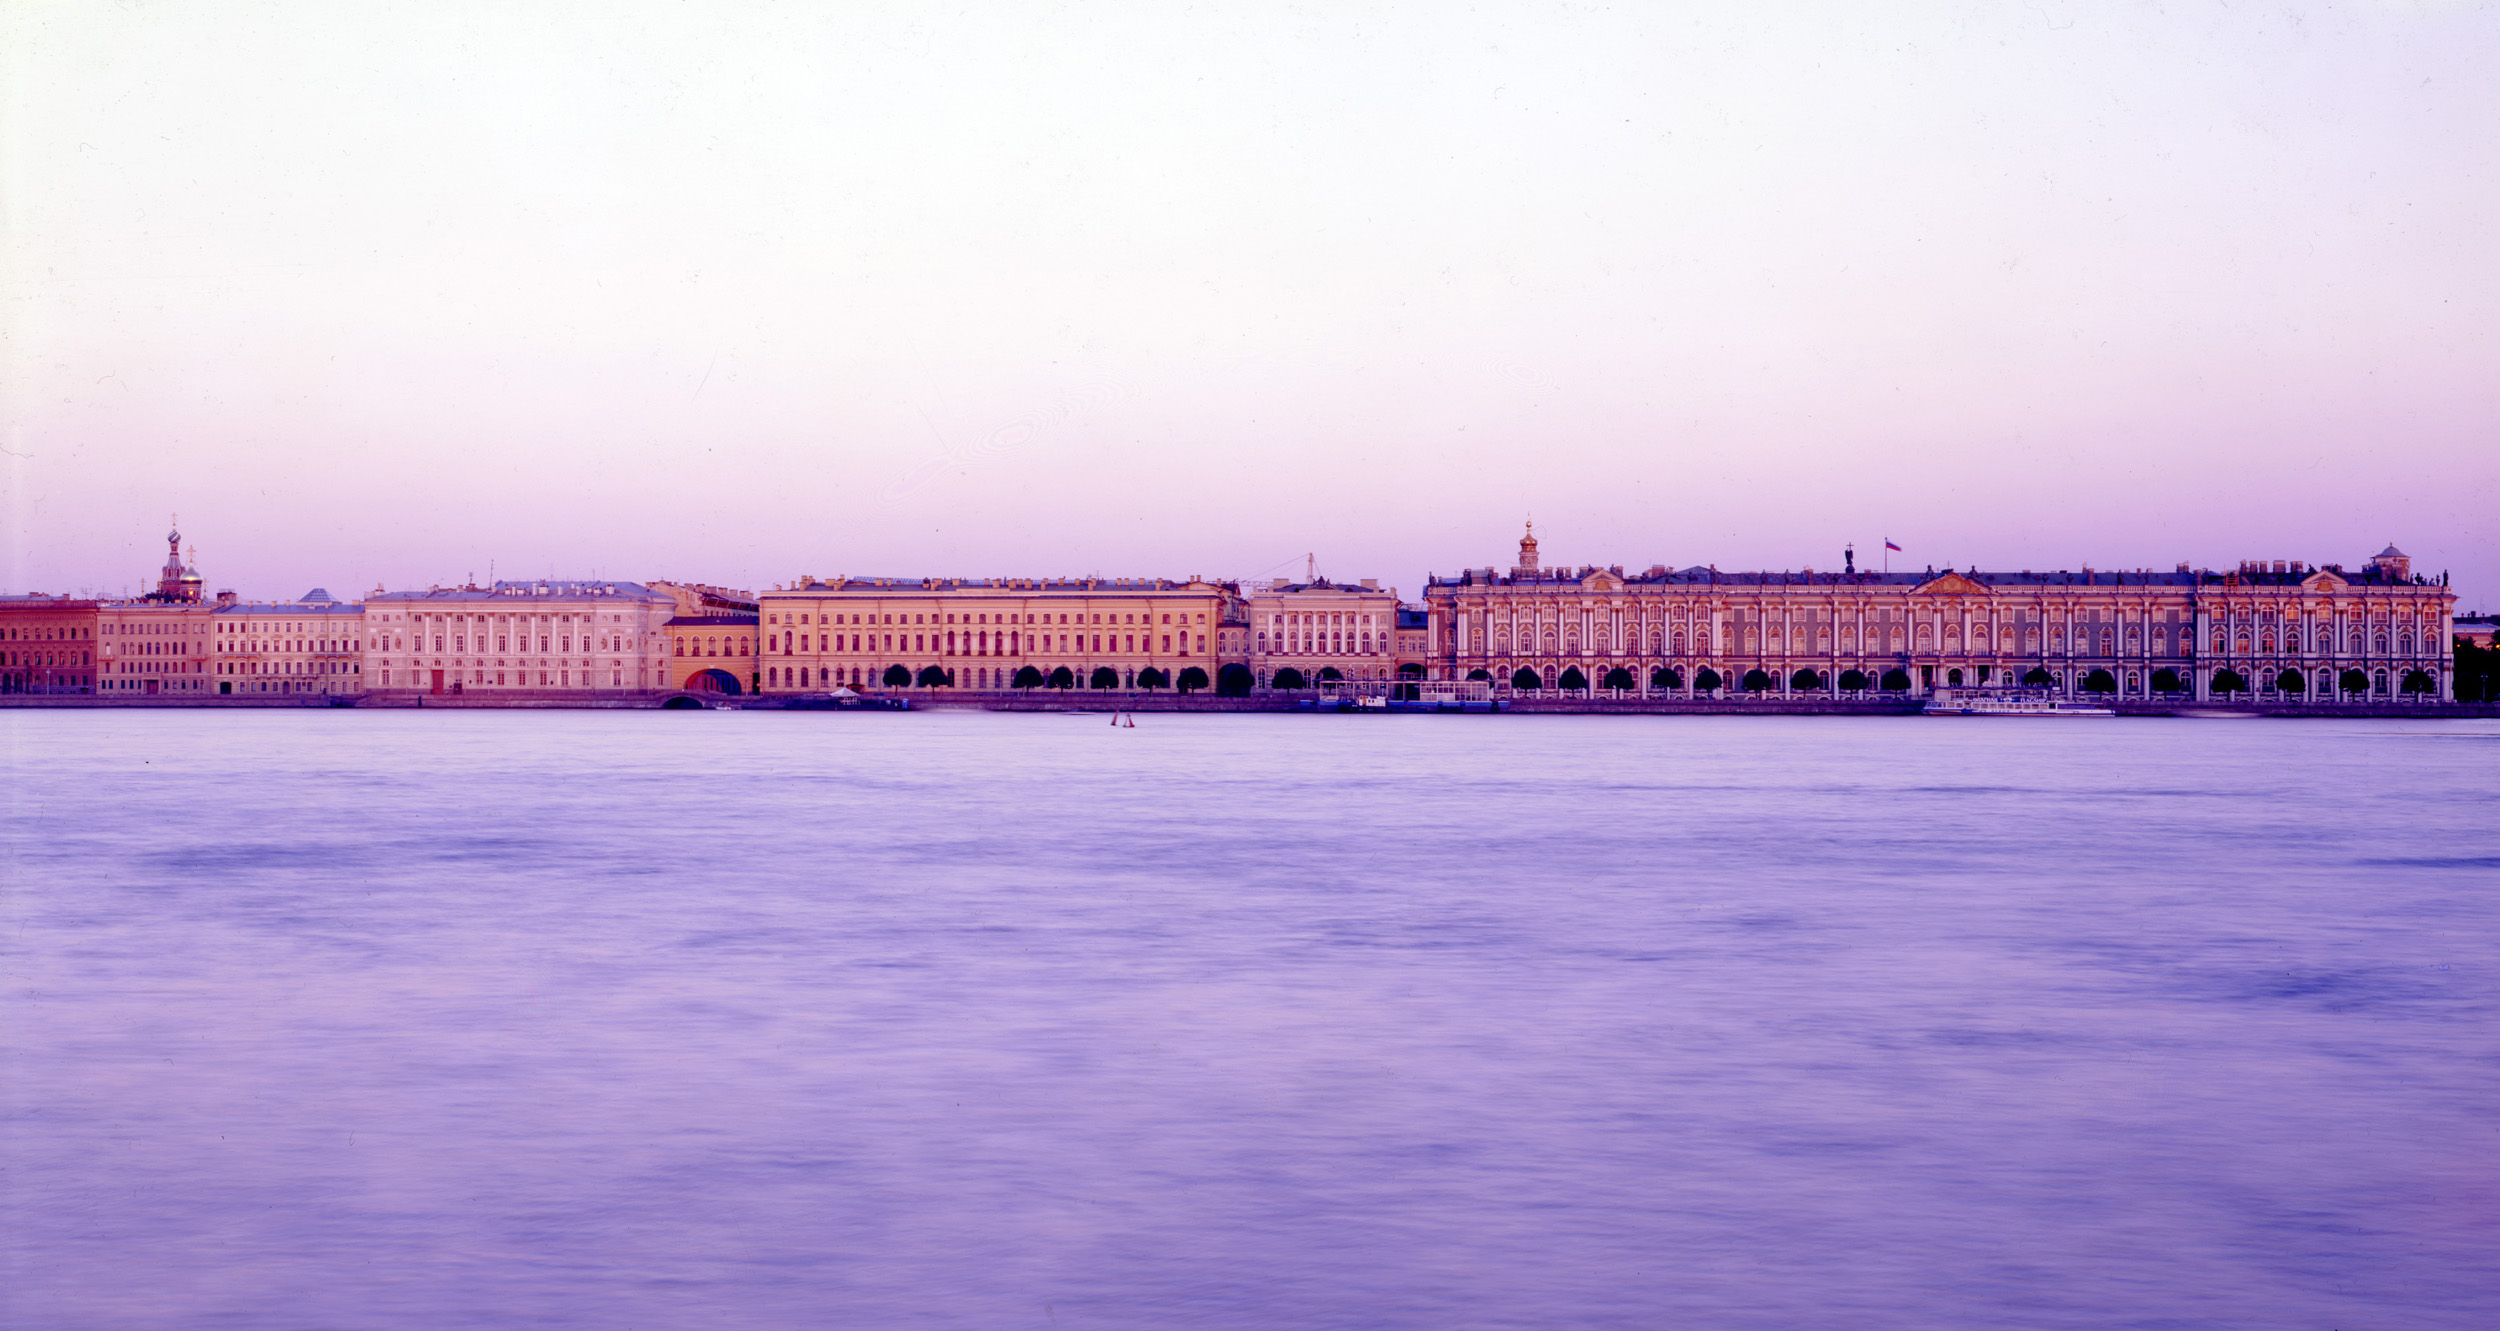 Hermitage Palace Embankement from Vasilyevsky Island  - Saint Petersburg